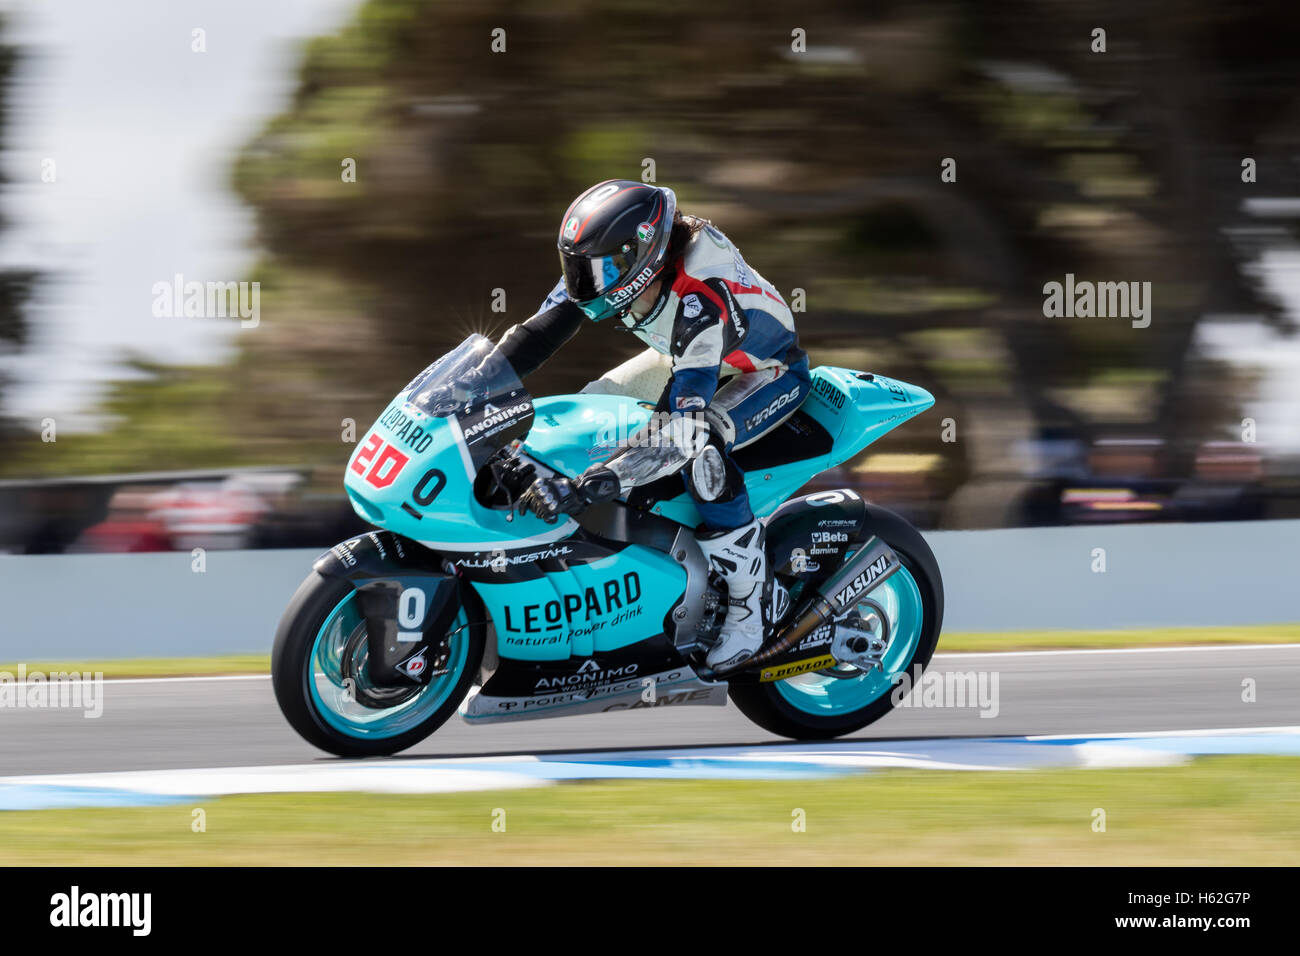 Melbourne, Australia. 23rd October, 2016.  during the 2016 Michelin Australian Motorcycle Grand Prix  at 2106 Michelin - Stock Image